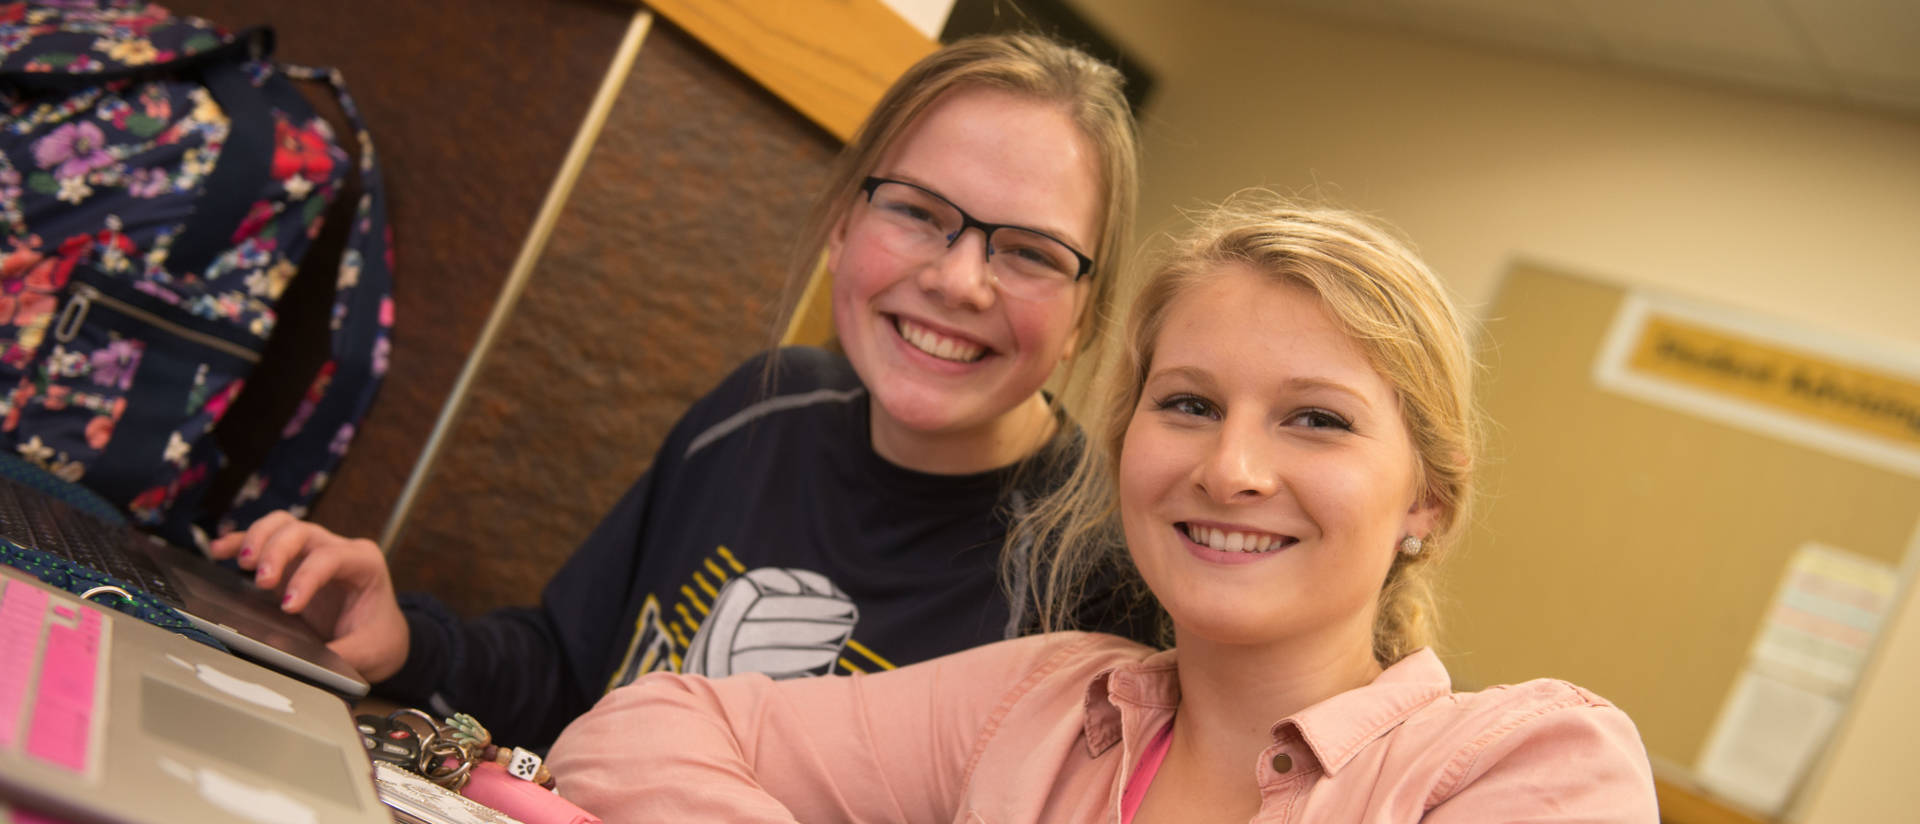 UW-Eau Claire – Barron County students study in a classroom.